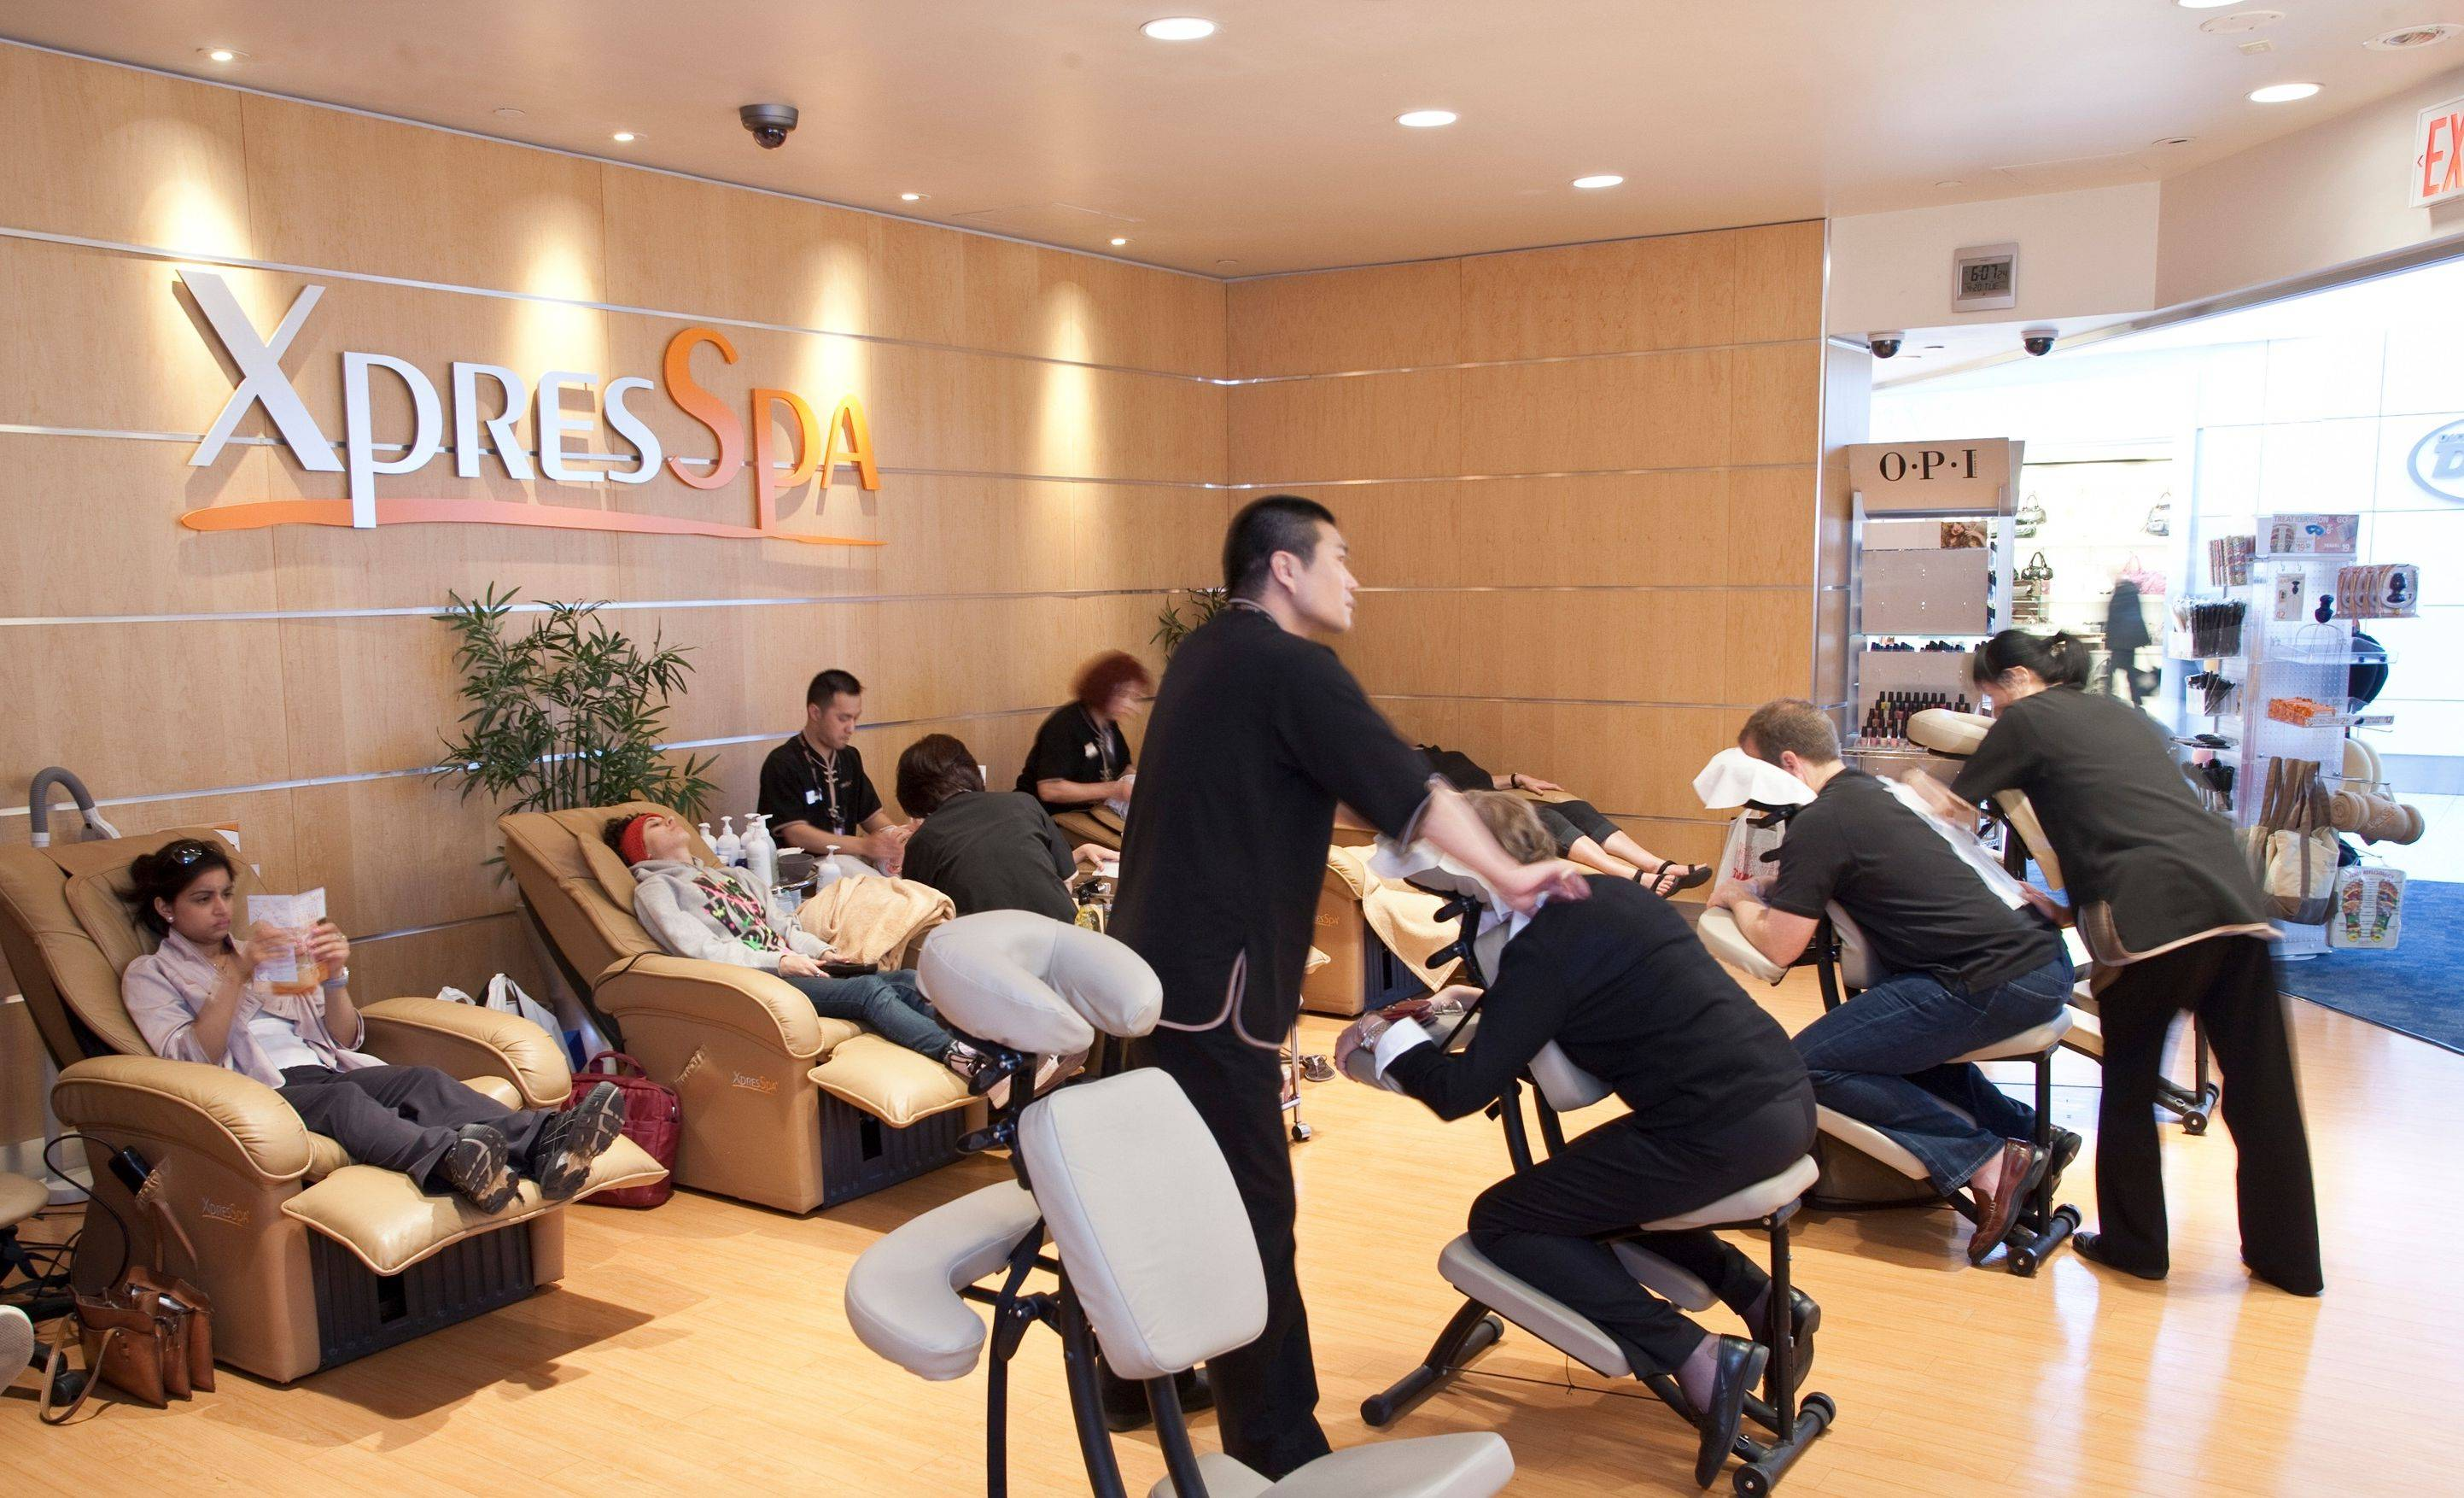 Customers receive massages and other treatments at the XpresSpa's spa at John F. Kennedy International Airport in New York.